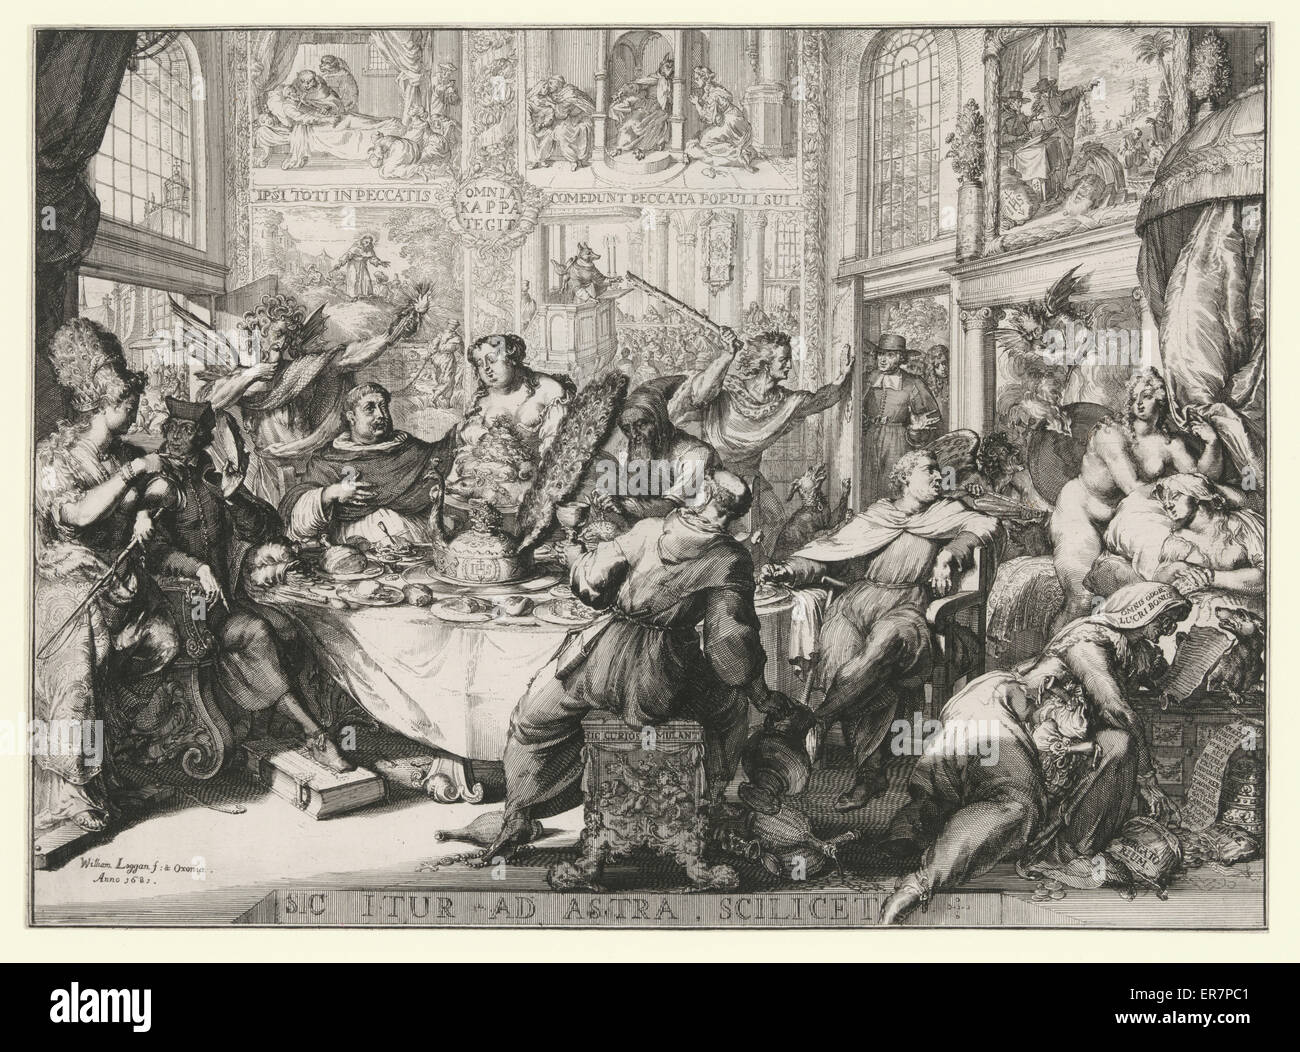 Sic itur ad astra scilicet. Print shows scene in a bawdy house of pleasure frequented by Father Petre and other - Stock Image